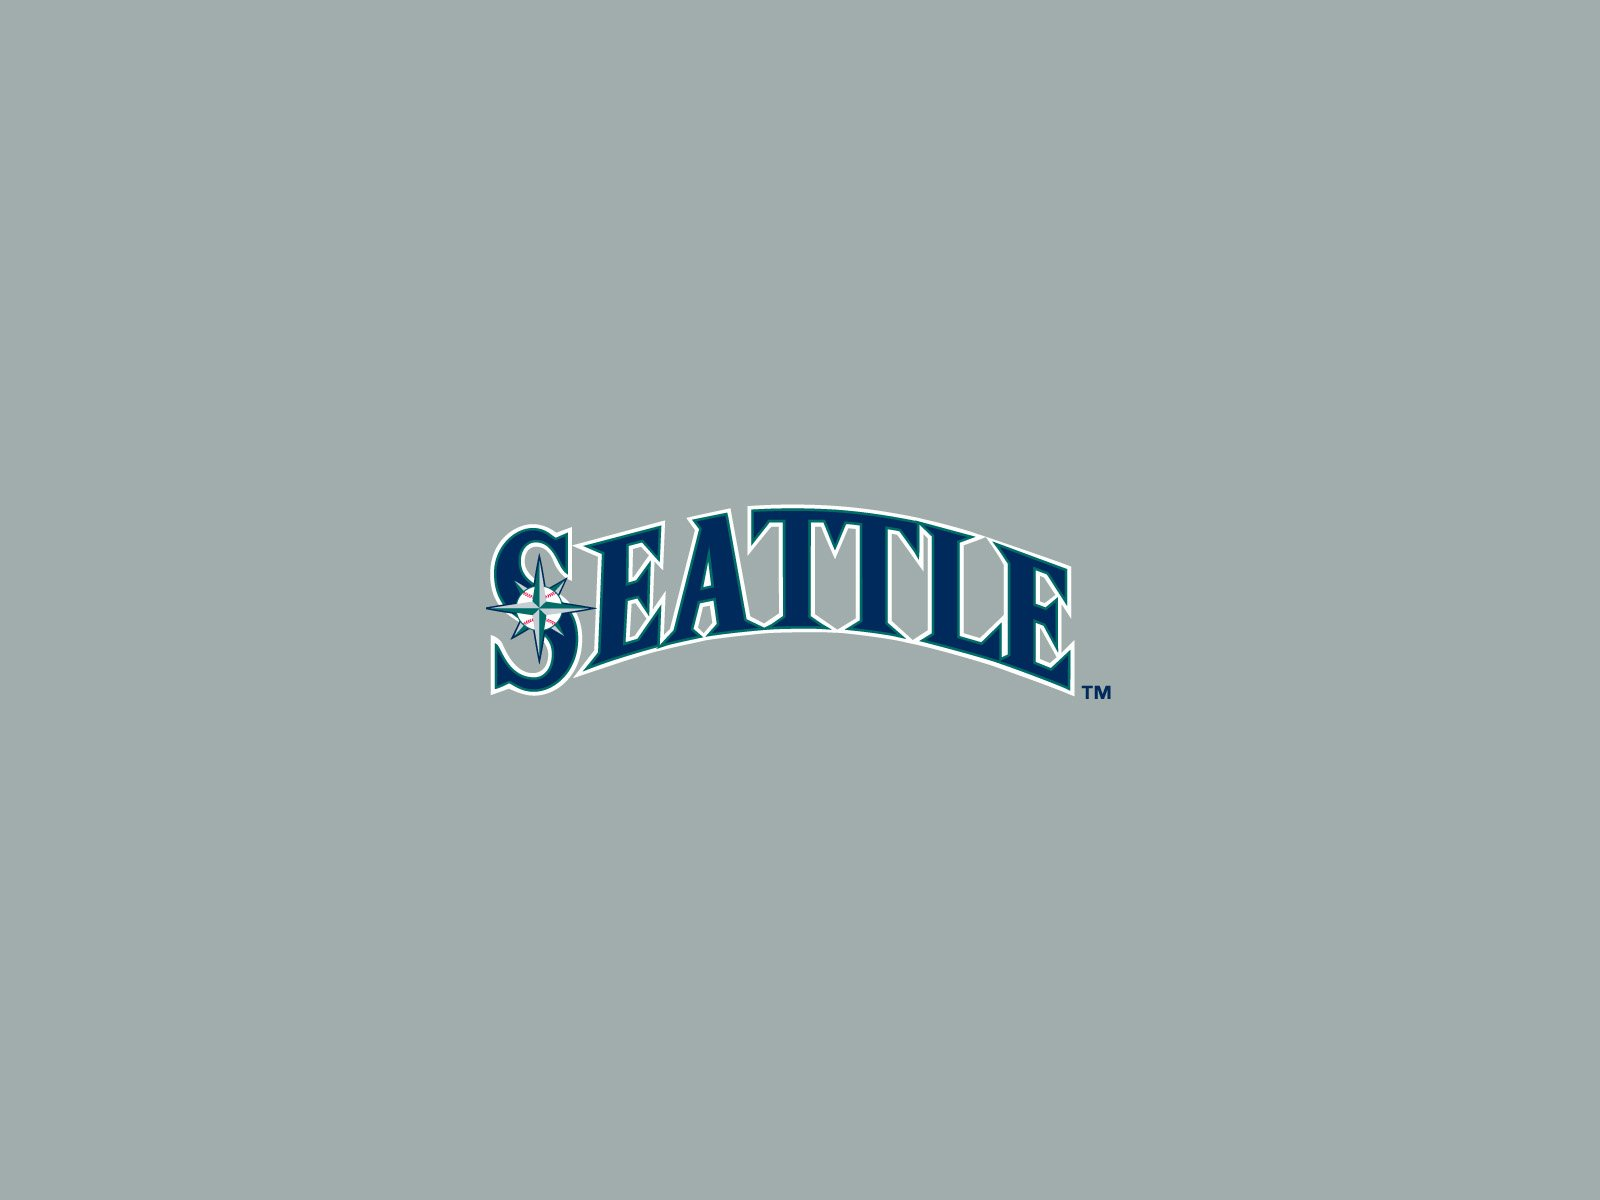 Seattle Mariners Wallpaper 9   1600 X 1200 stmednet 1600x1200